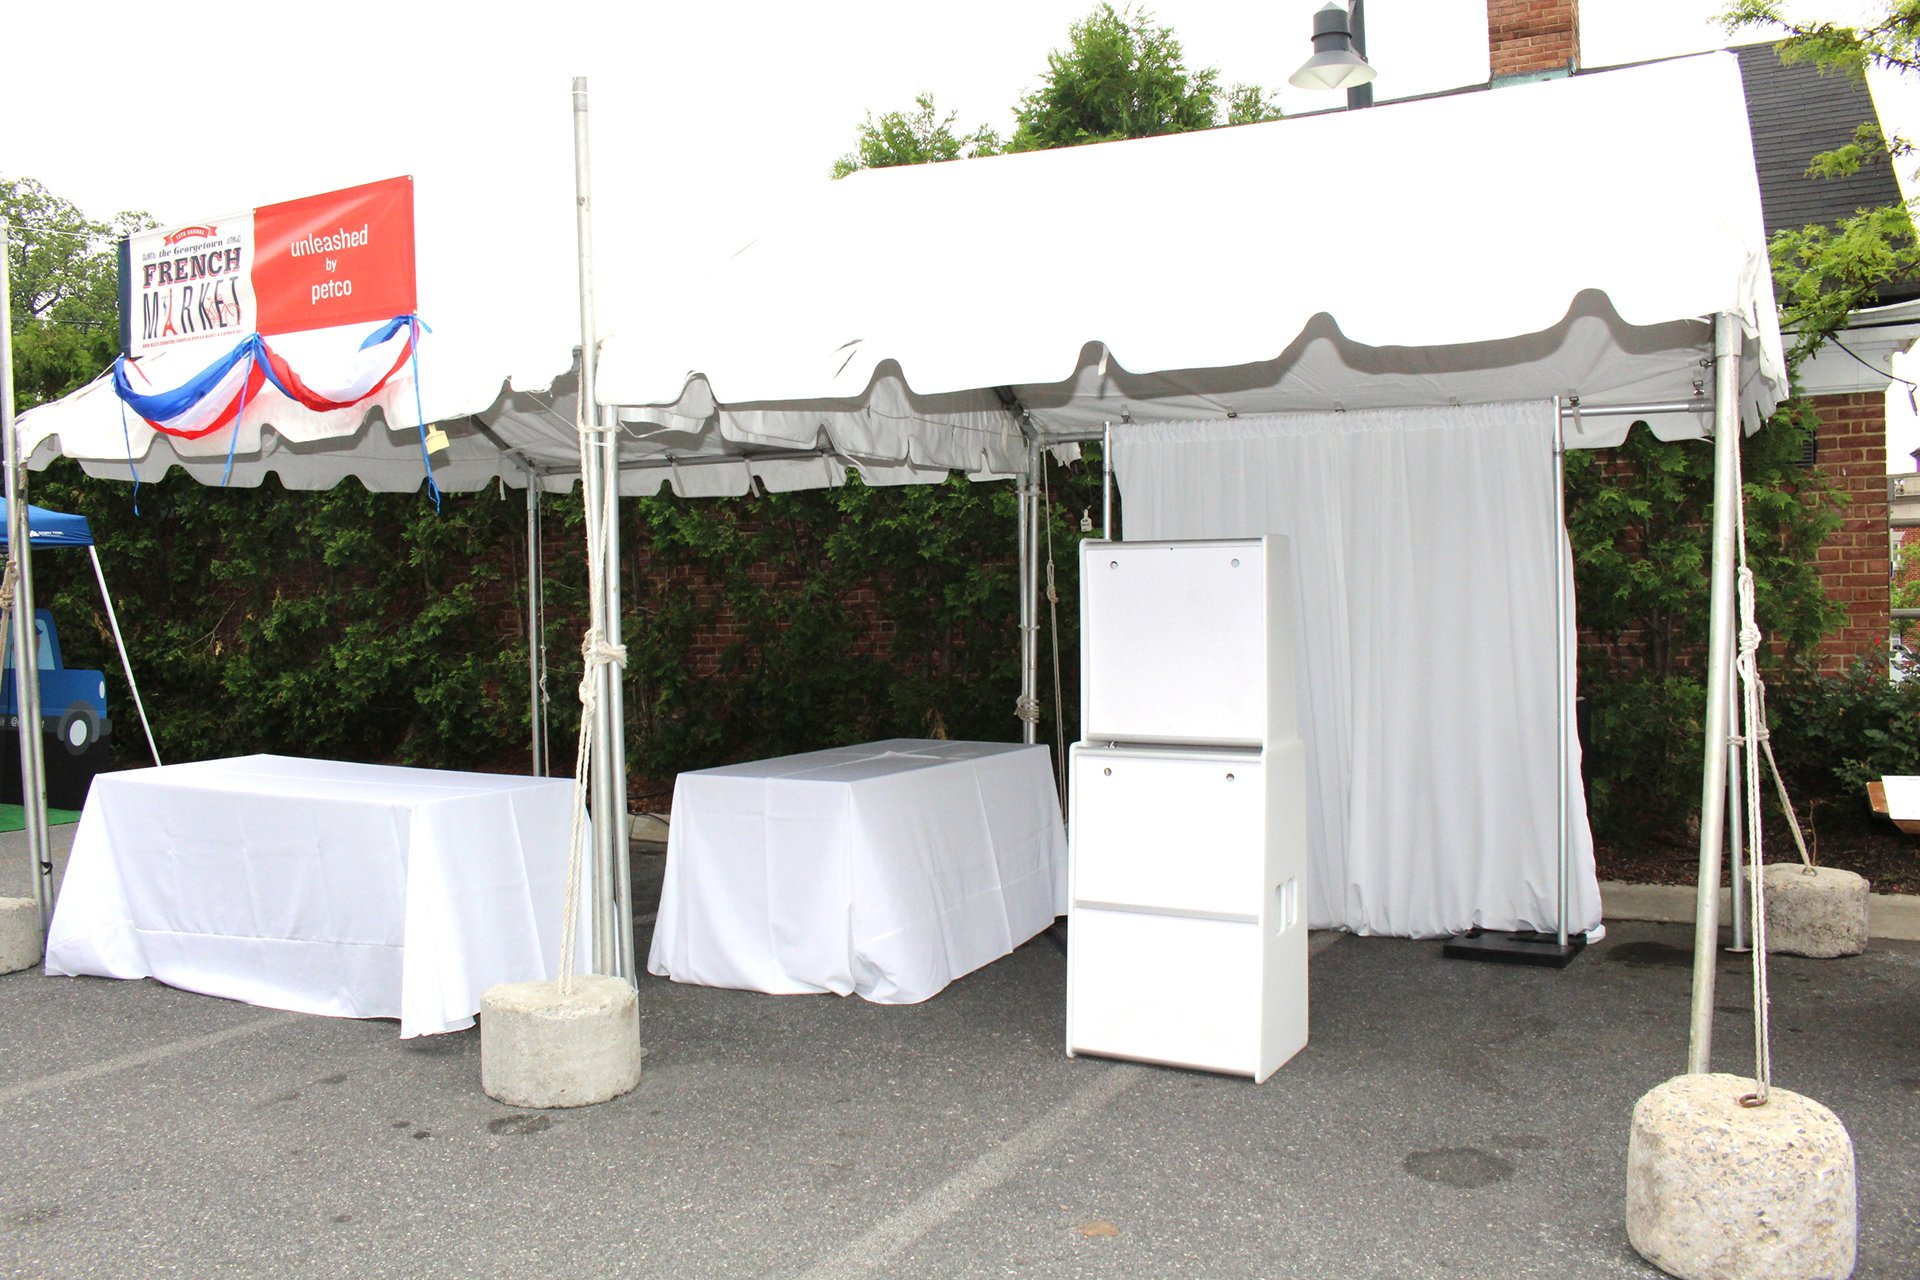 69_Georgetown_french_market_2016_outdoor_tent_event_video_AlistPhotoBooth_AlistPhotoBooths_Photo_Booth_Photobooth_MD_VA_DC_Rental_rent_corporate_branding_so ... : outdoor booth tent - memphite.com